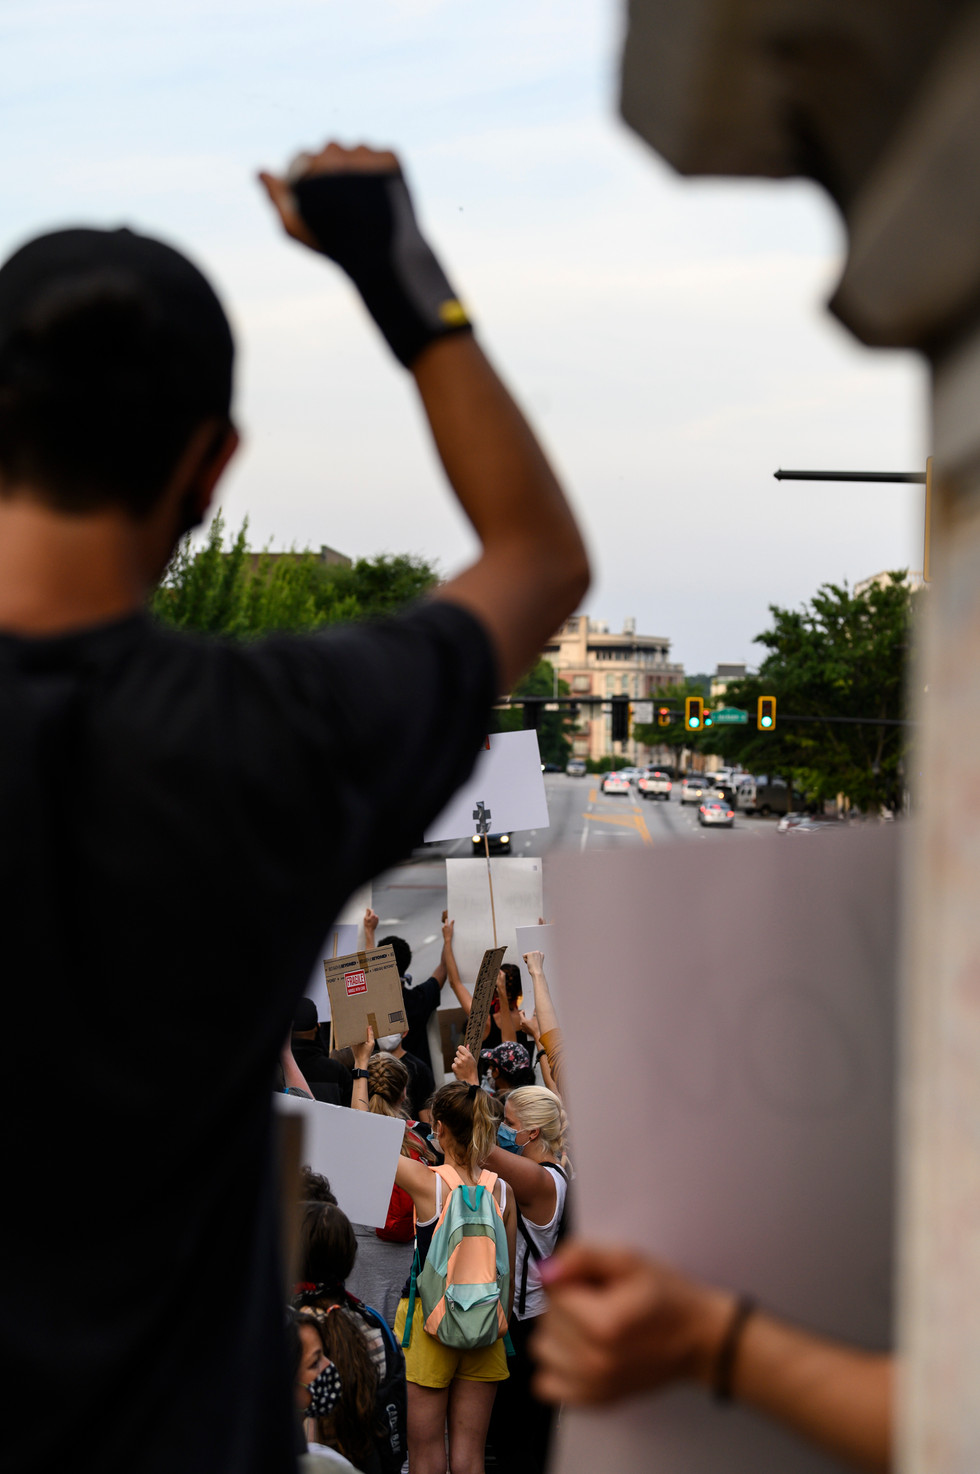 Silent protesters hold signs as passing cars honk in downtown Athens, Georgia on Wednesday, June 3, 2020. This is the fourth consecutive day of protests in Athens as protesters join with those around the world demonstrating in response to the death of George Floyd in police custody.